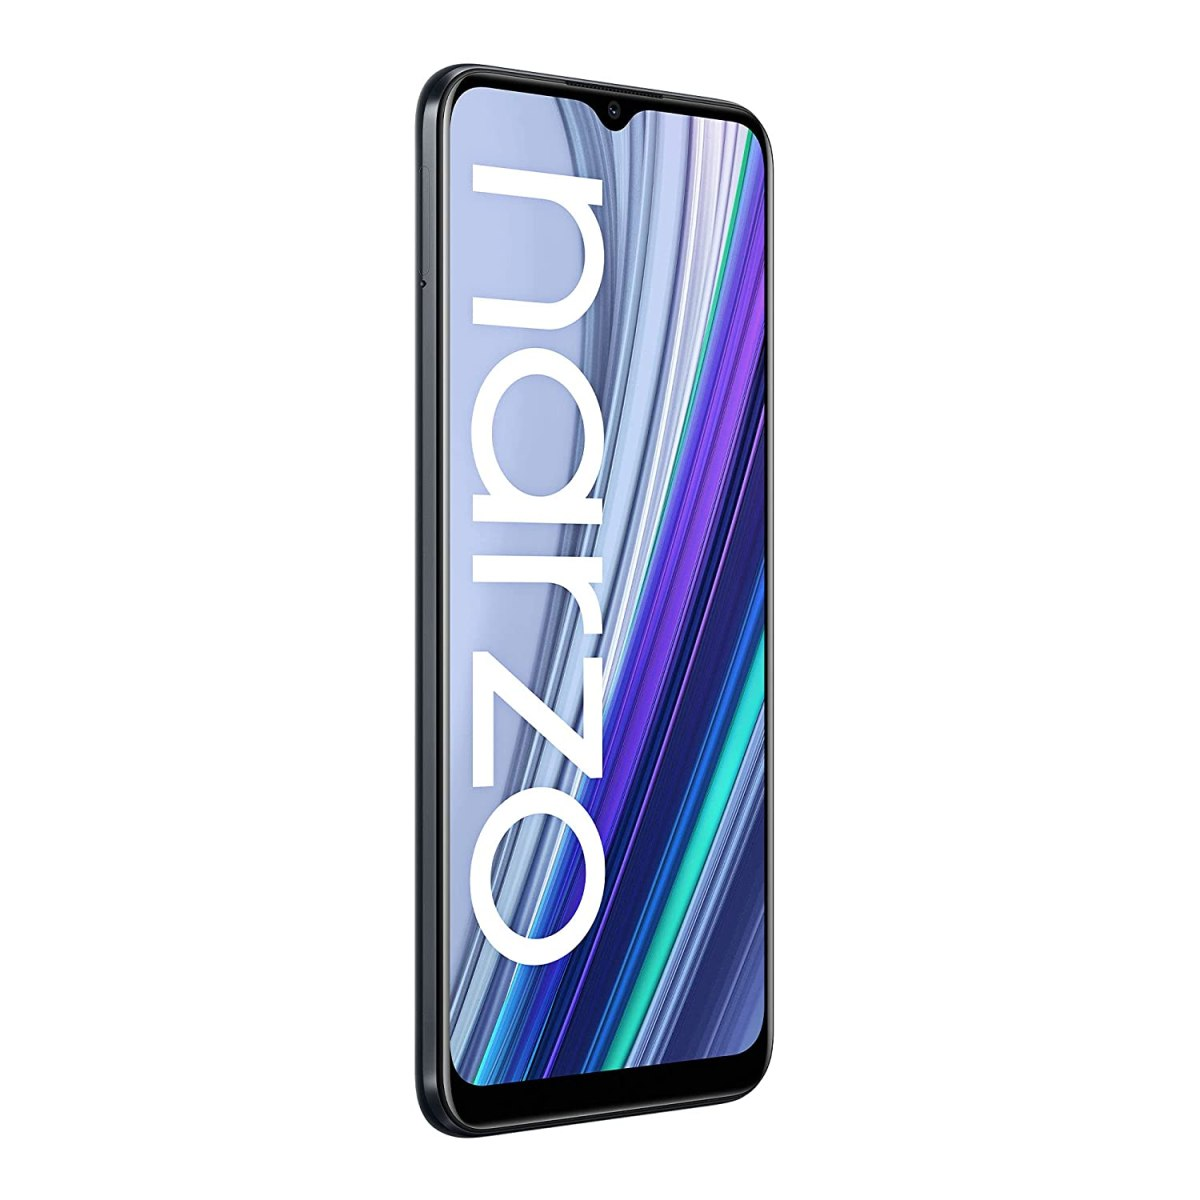 Realme Narzo 30A one of the top 5 phones under 10000